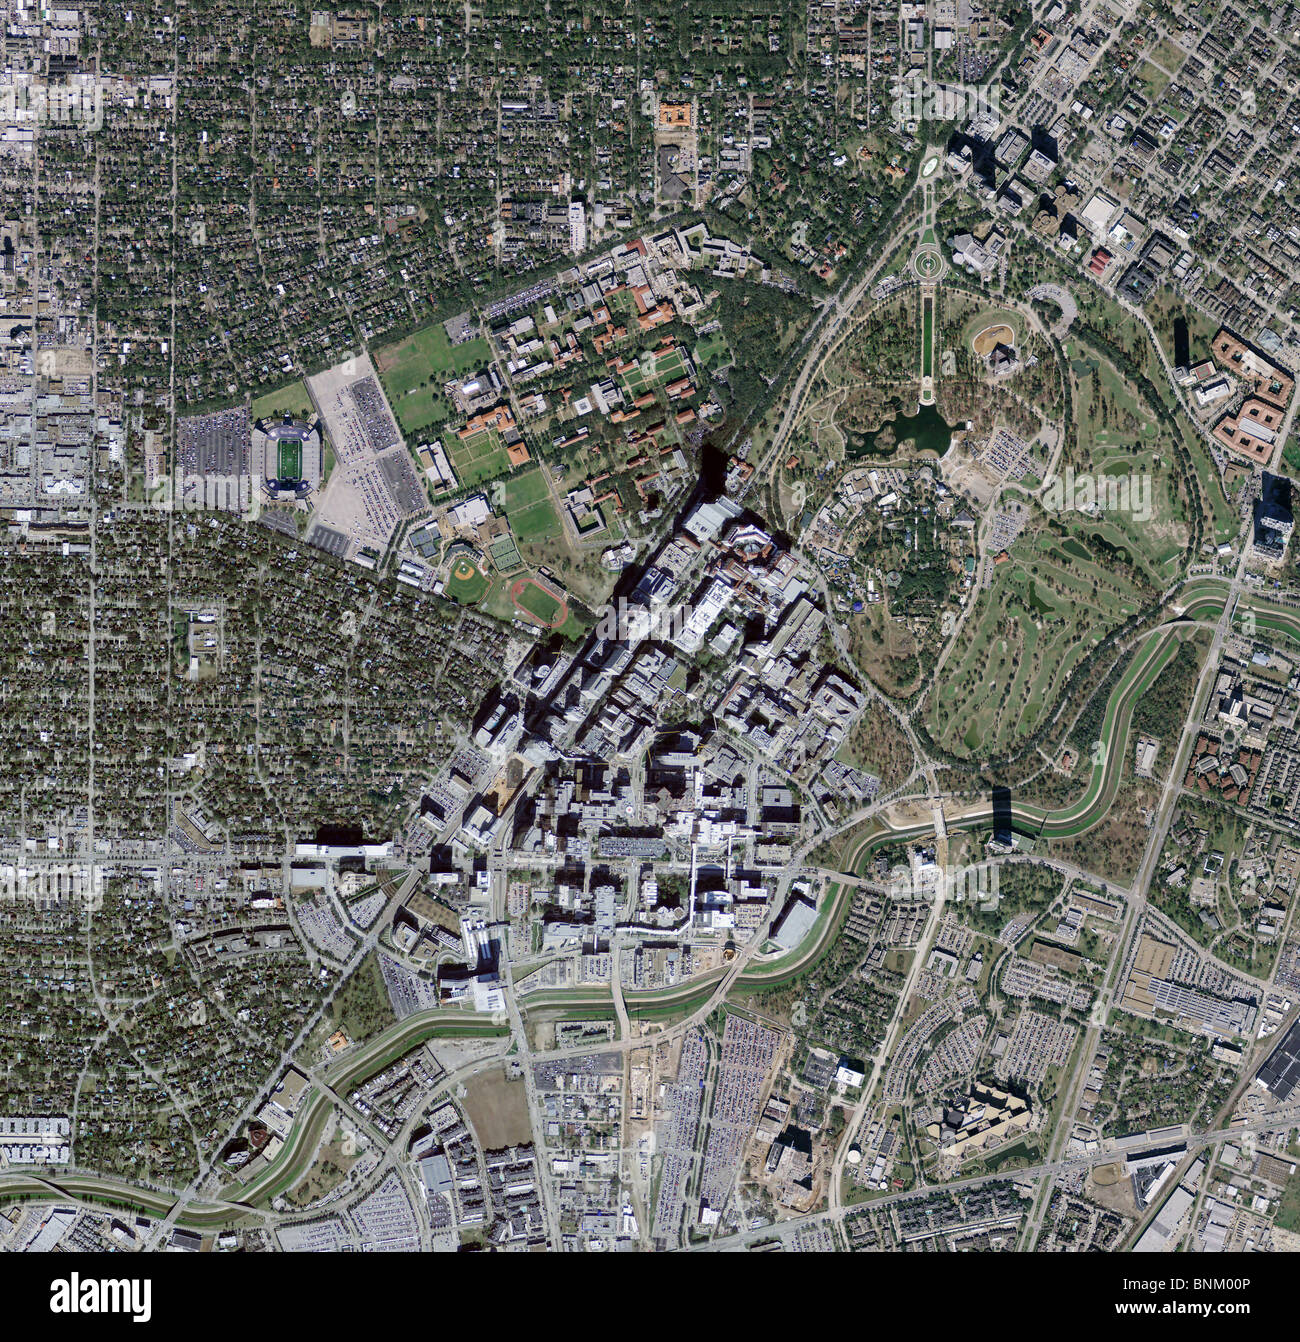 Medical Center Houston Map.Aerial Map View Above Texas Medical Center Houston Texas Stock Photo